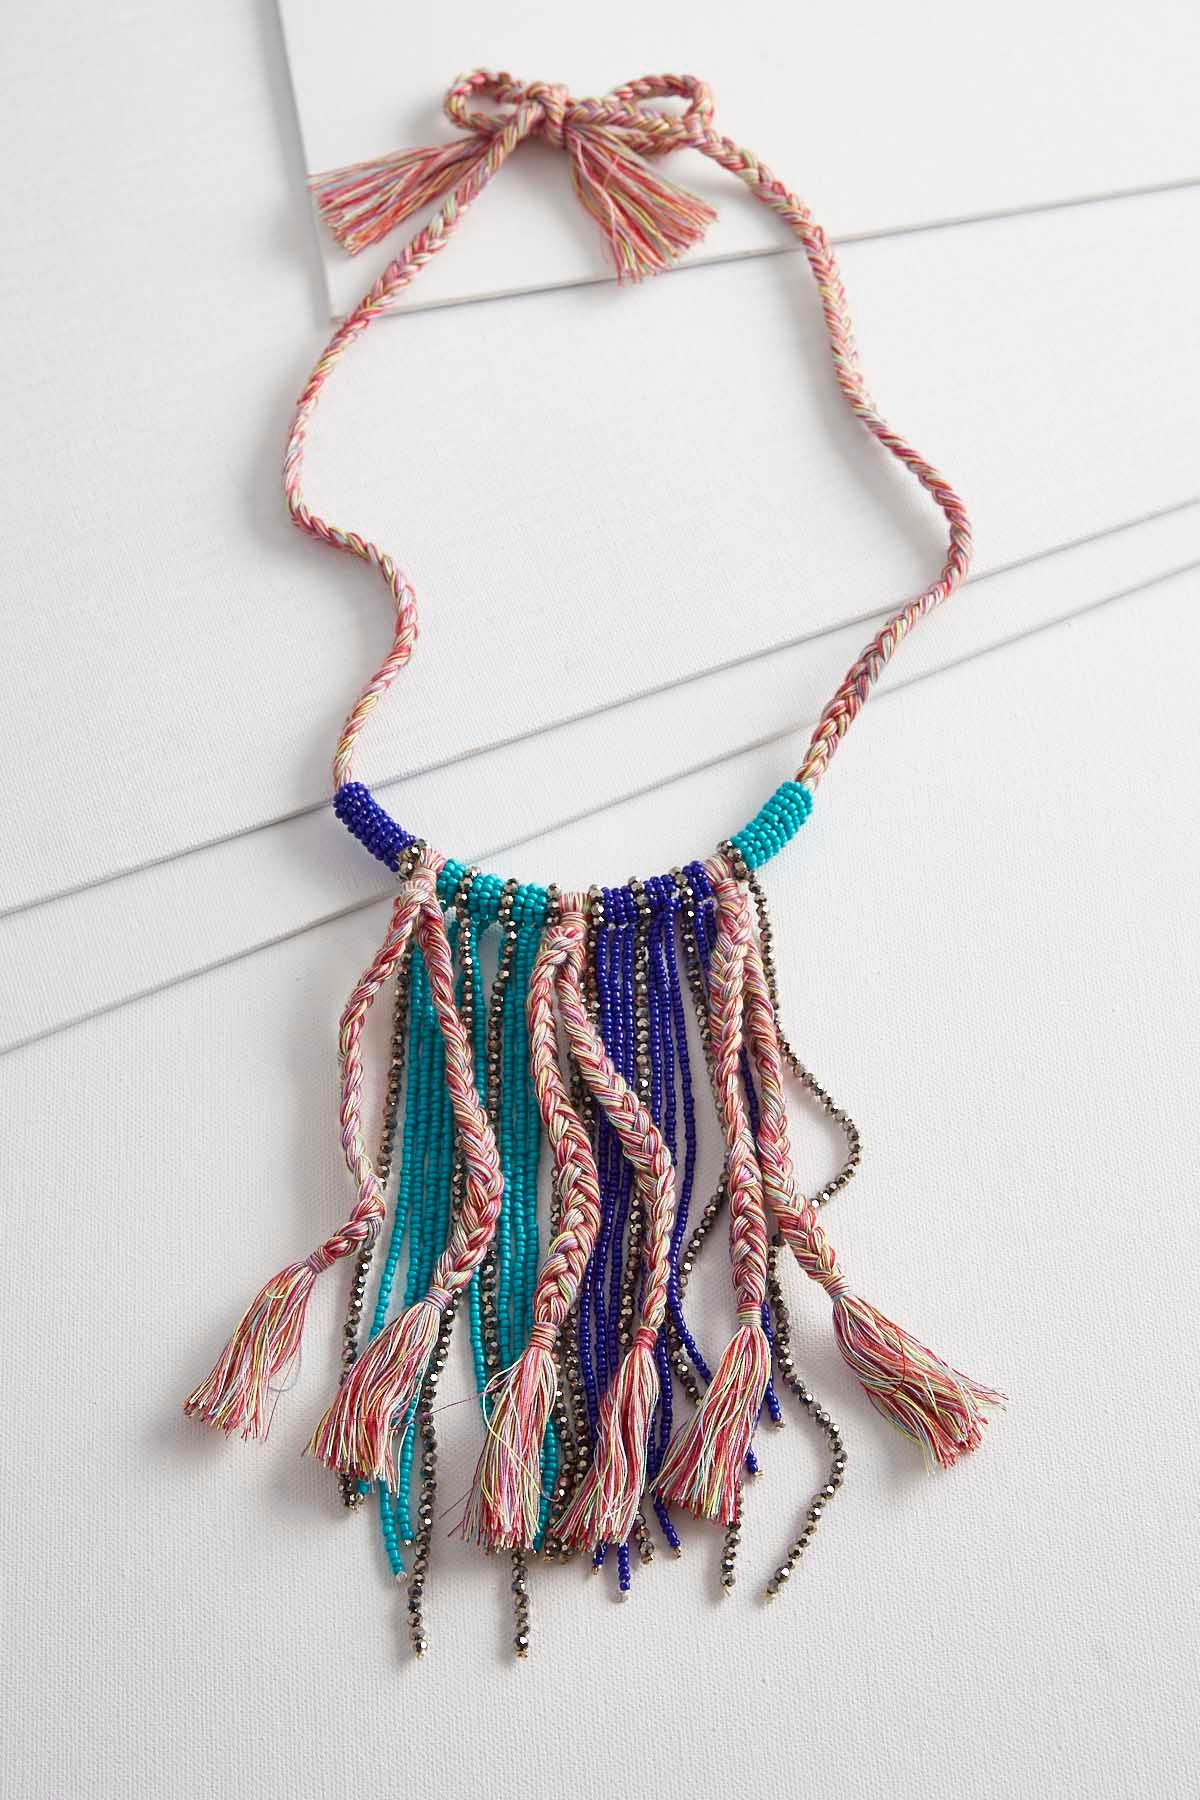 Braids And Beads Tasseled Necklace